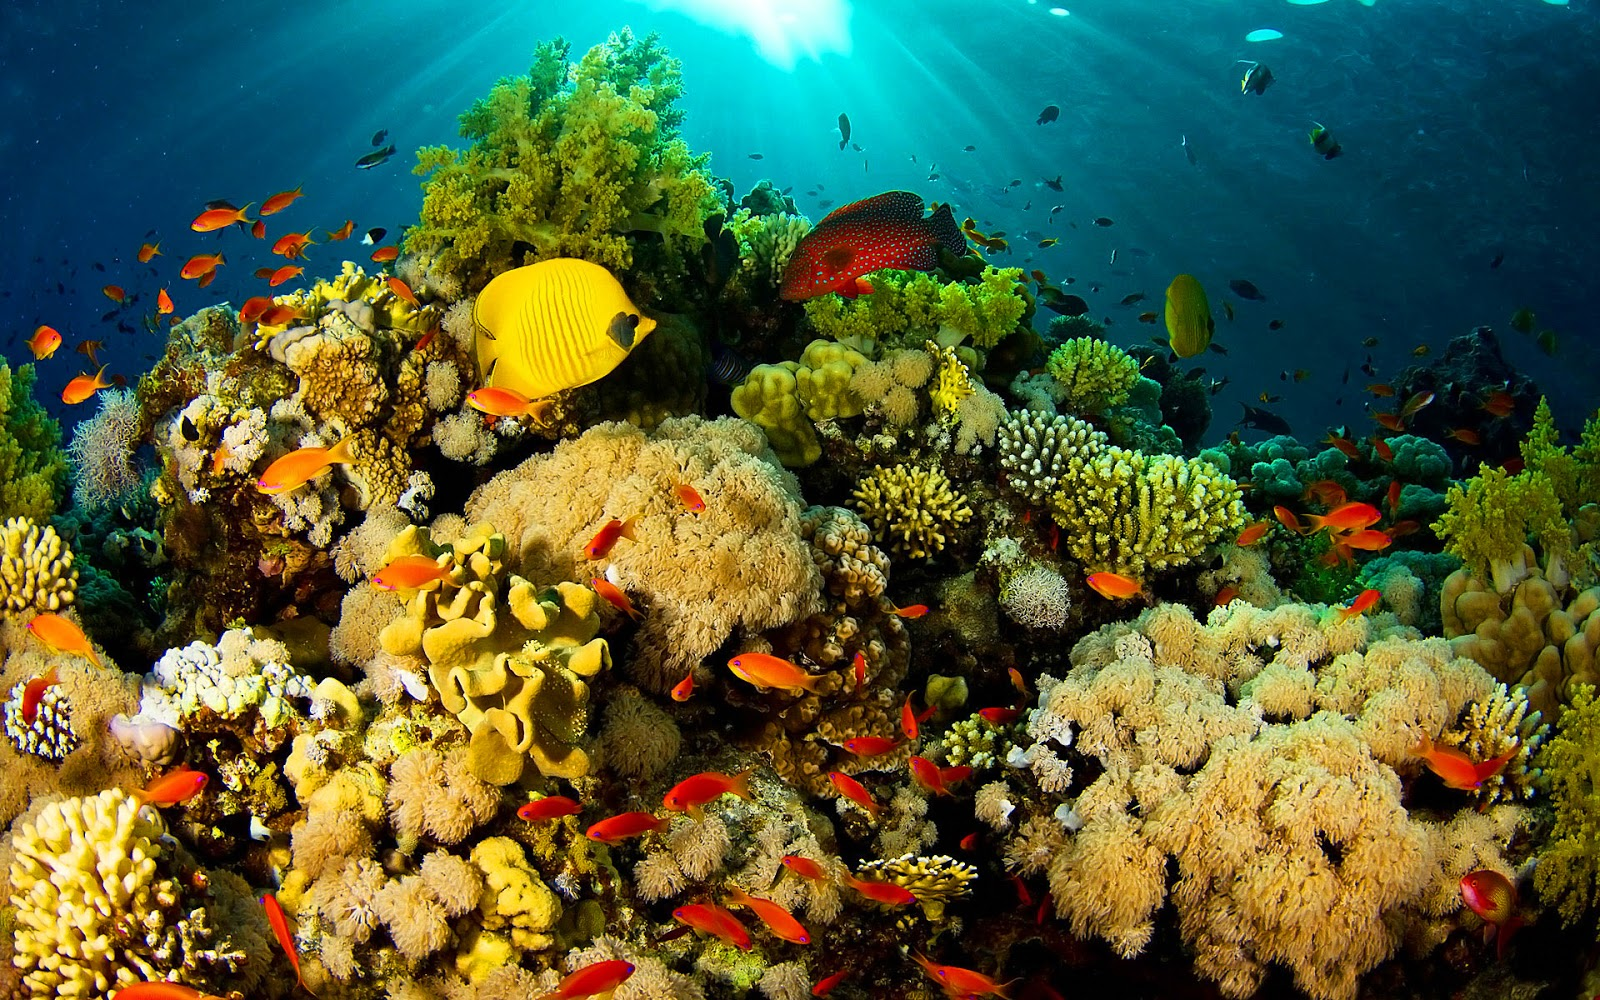 Tropical ocean animals and plants - photo#4